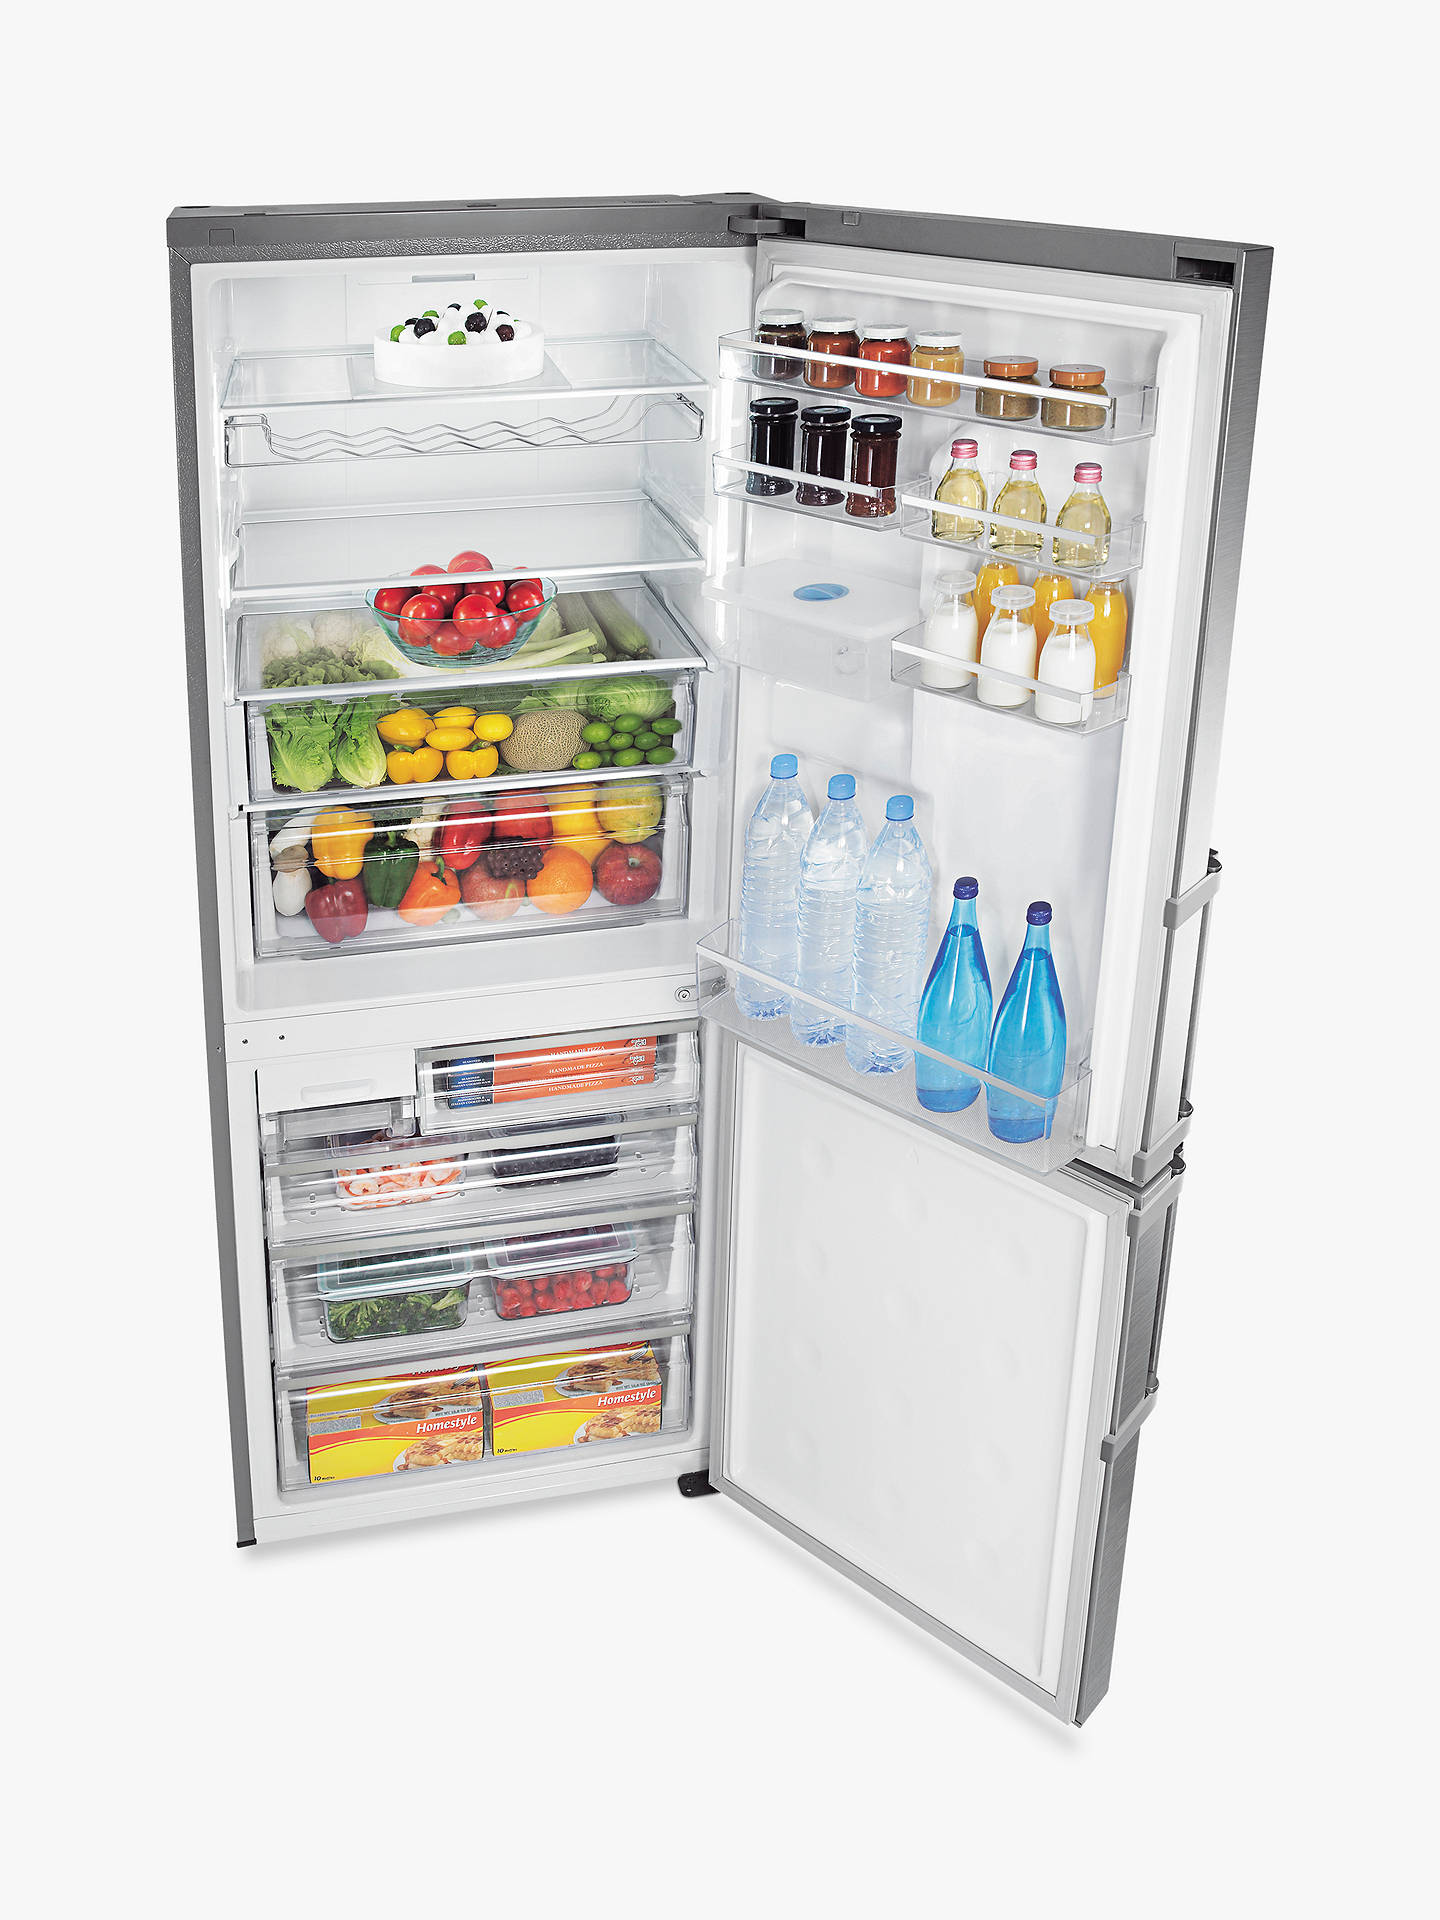 Buy Samsung RL4362FBASL Freestanding 70/30 Fridge Freezer, A+ Energy Rating, 70cm Wide, Stainless Steel Online at johnlewis.com